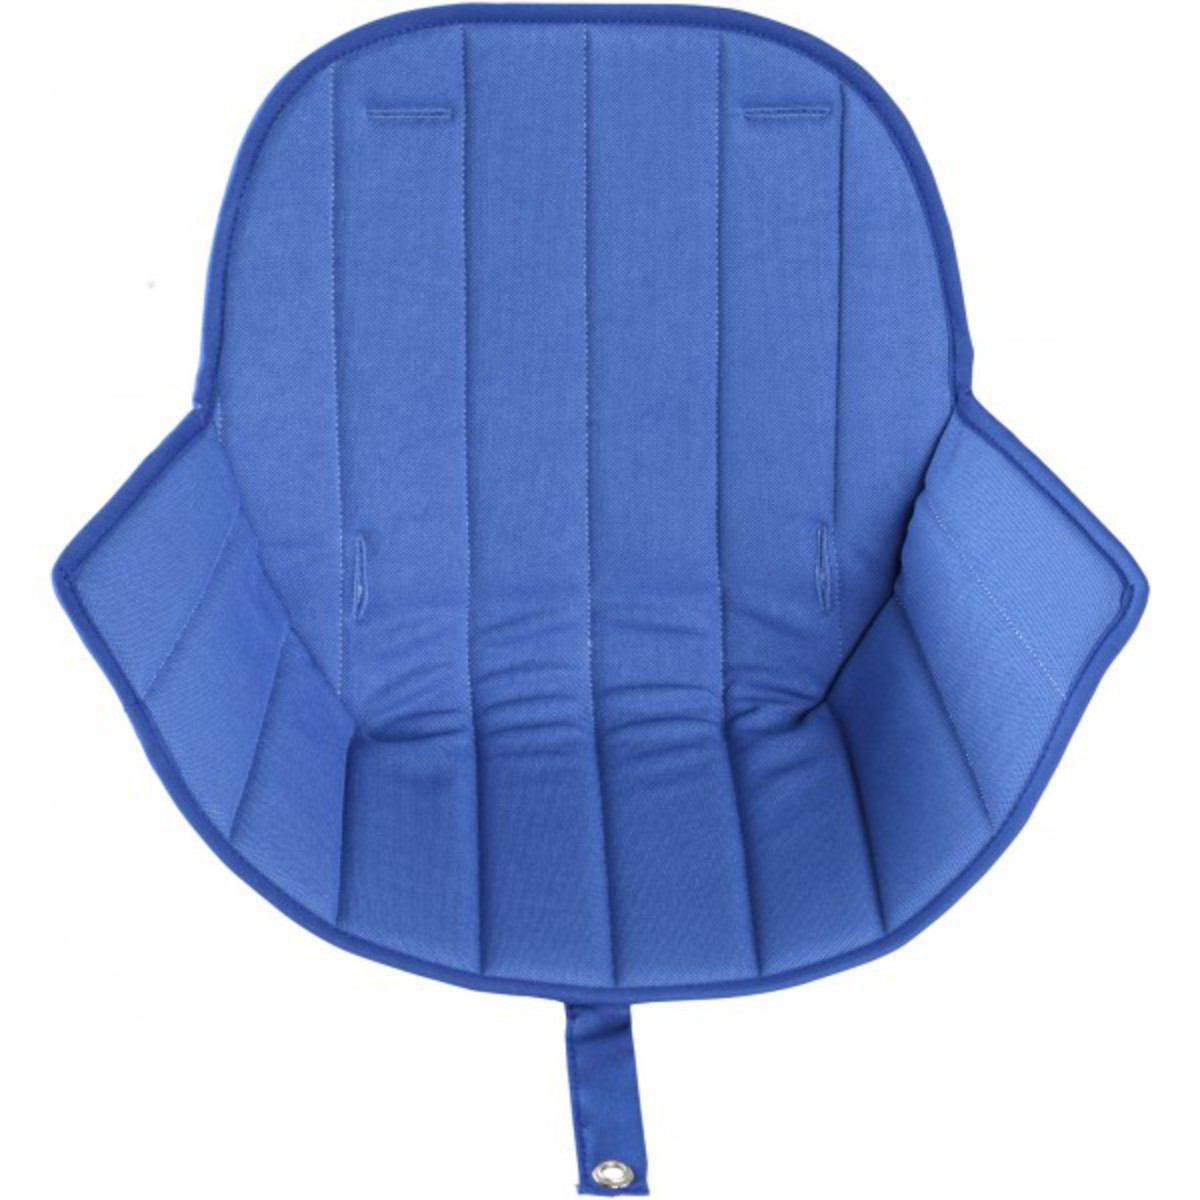 Chaise haute Assise Ovo - Blue Assise Ovo - Blue